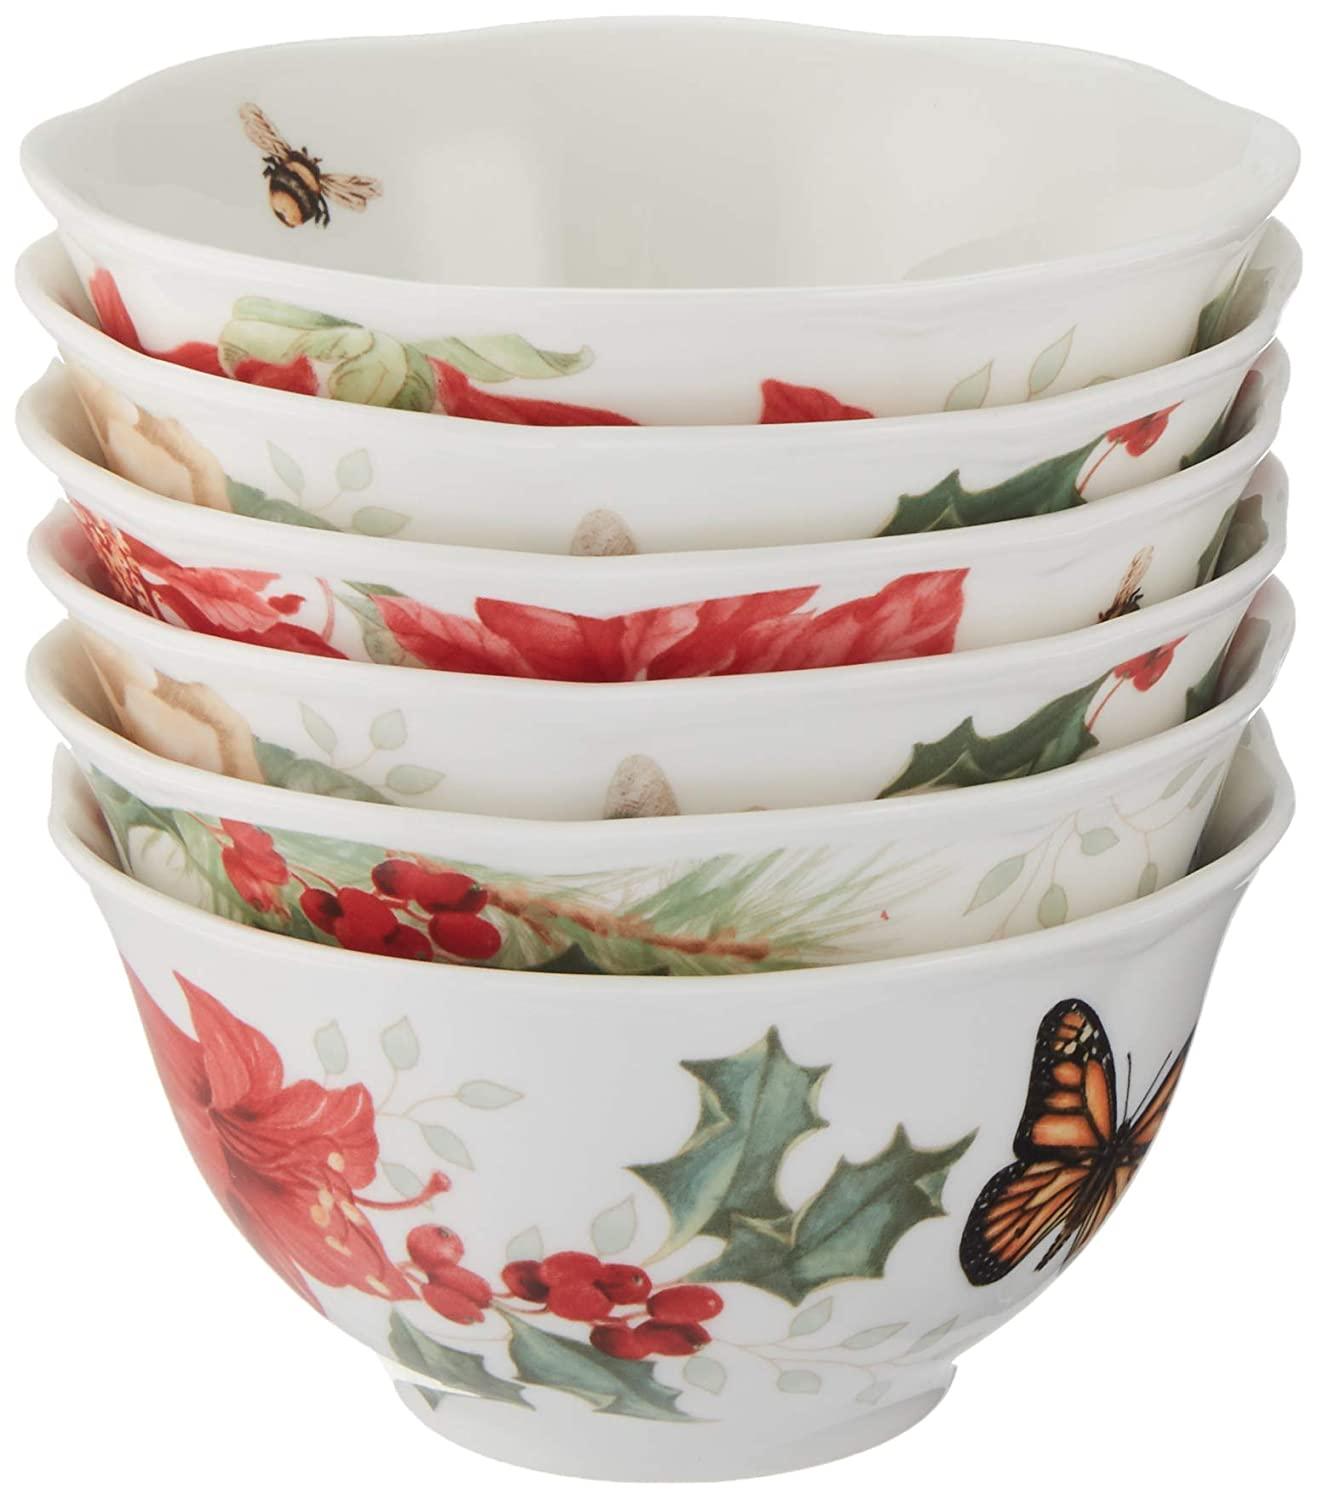 Lenox 880092 Butterfly Meadow Holiday Rice Bowls, Multicolor